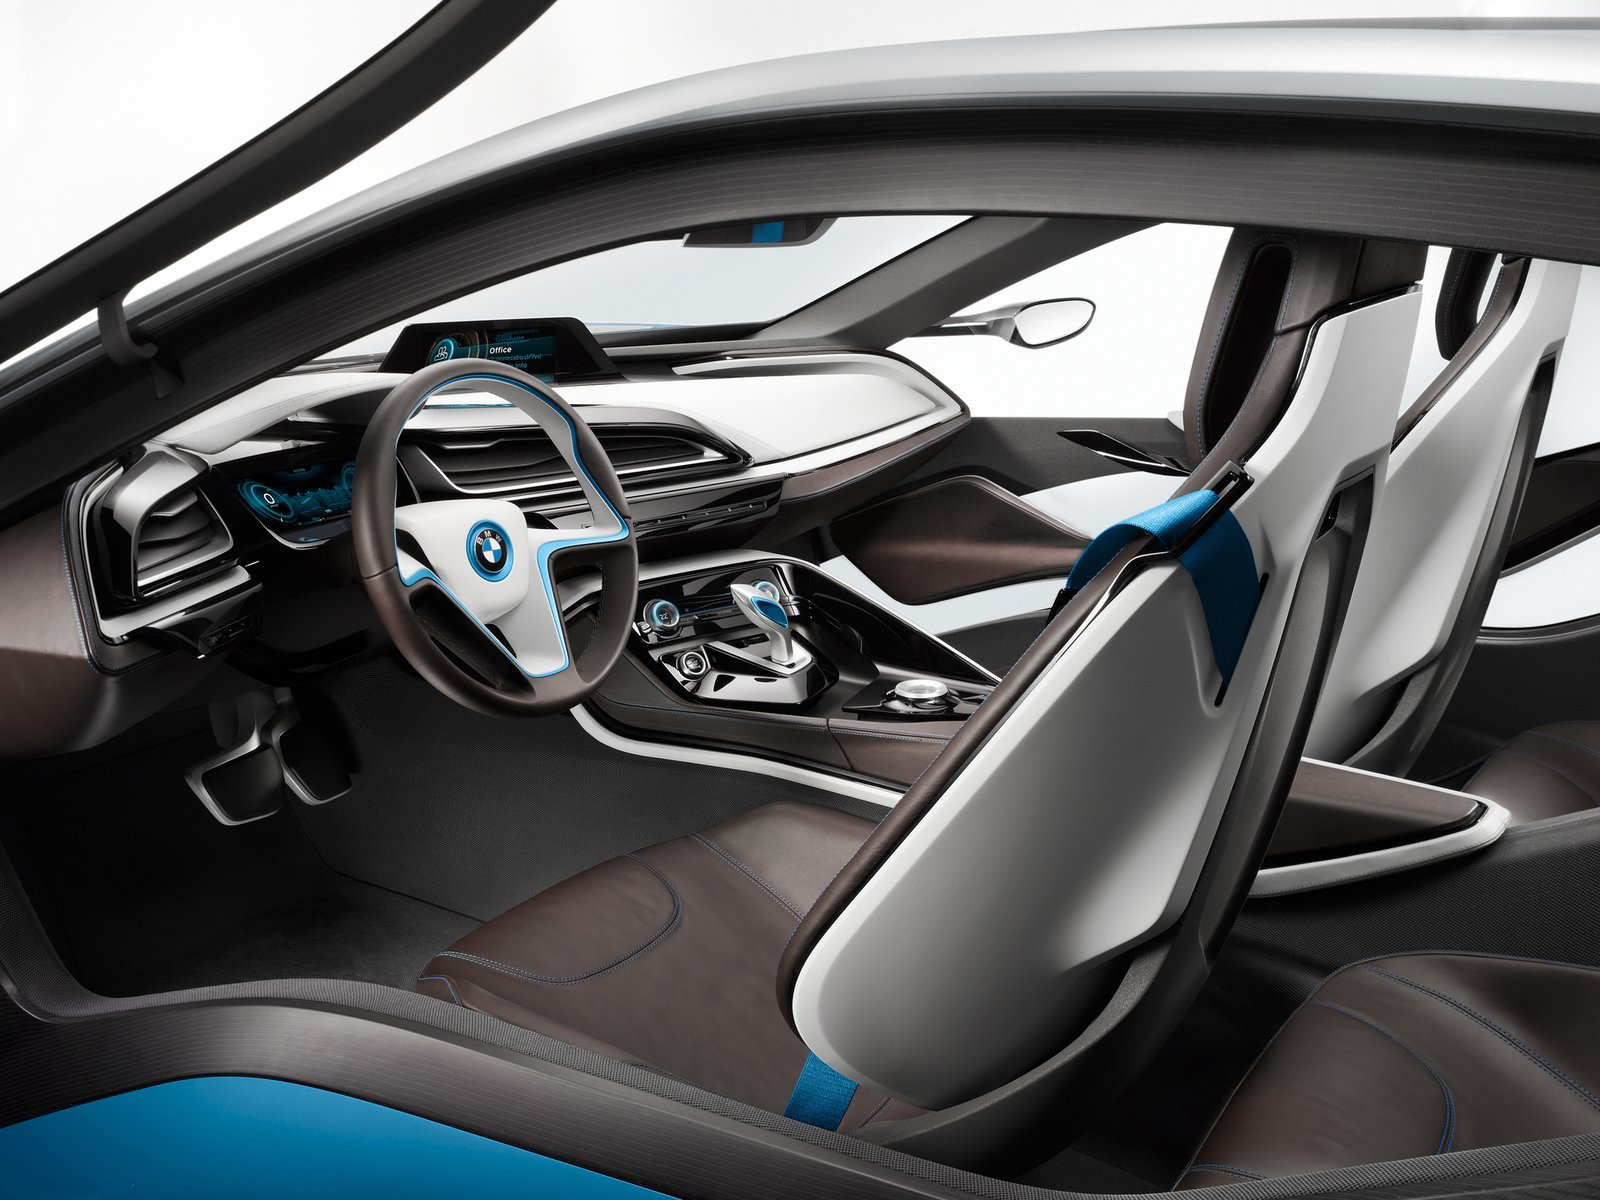 bmw i8 interior production. interior seat and dashboard bmw i8 production